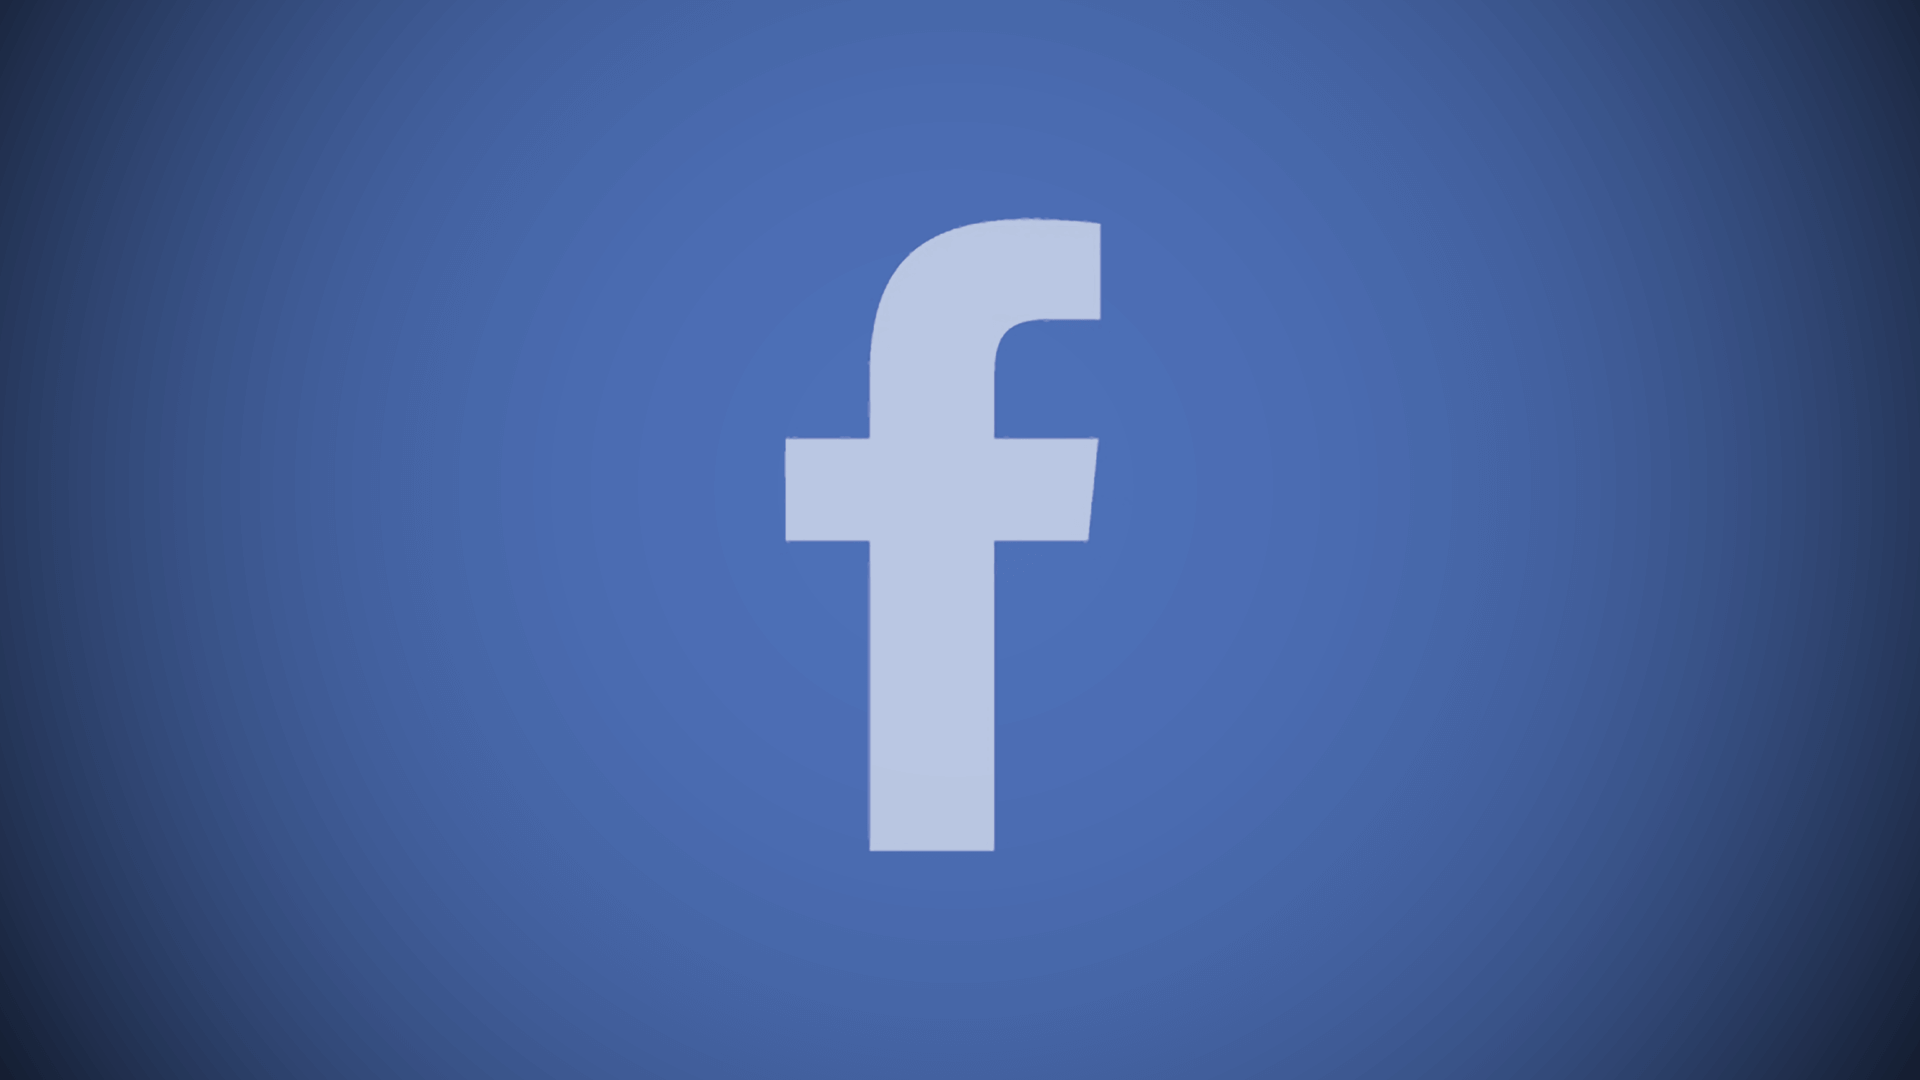 Will Facebook Be Replaced?